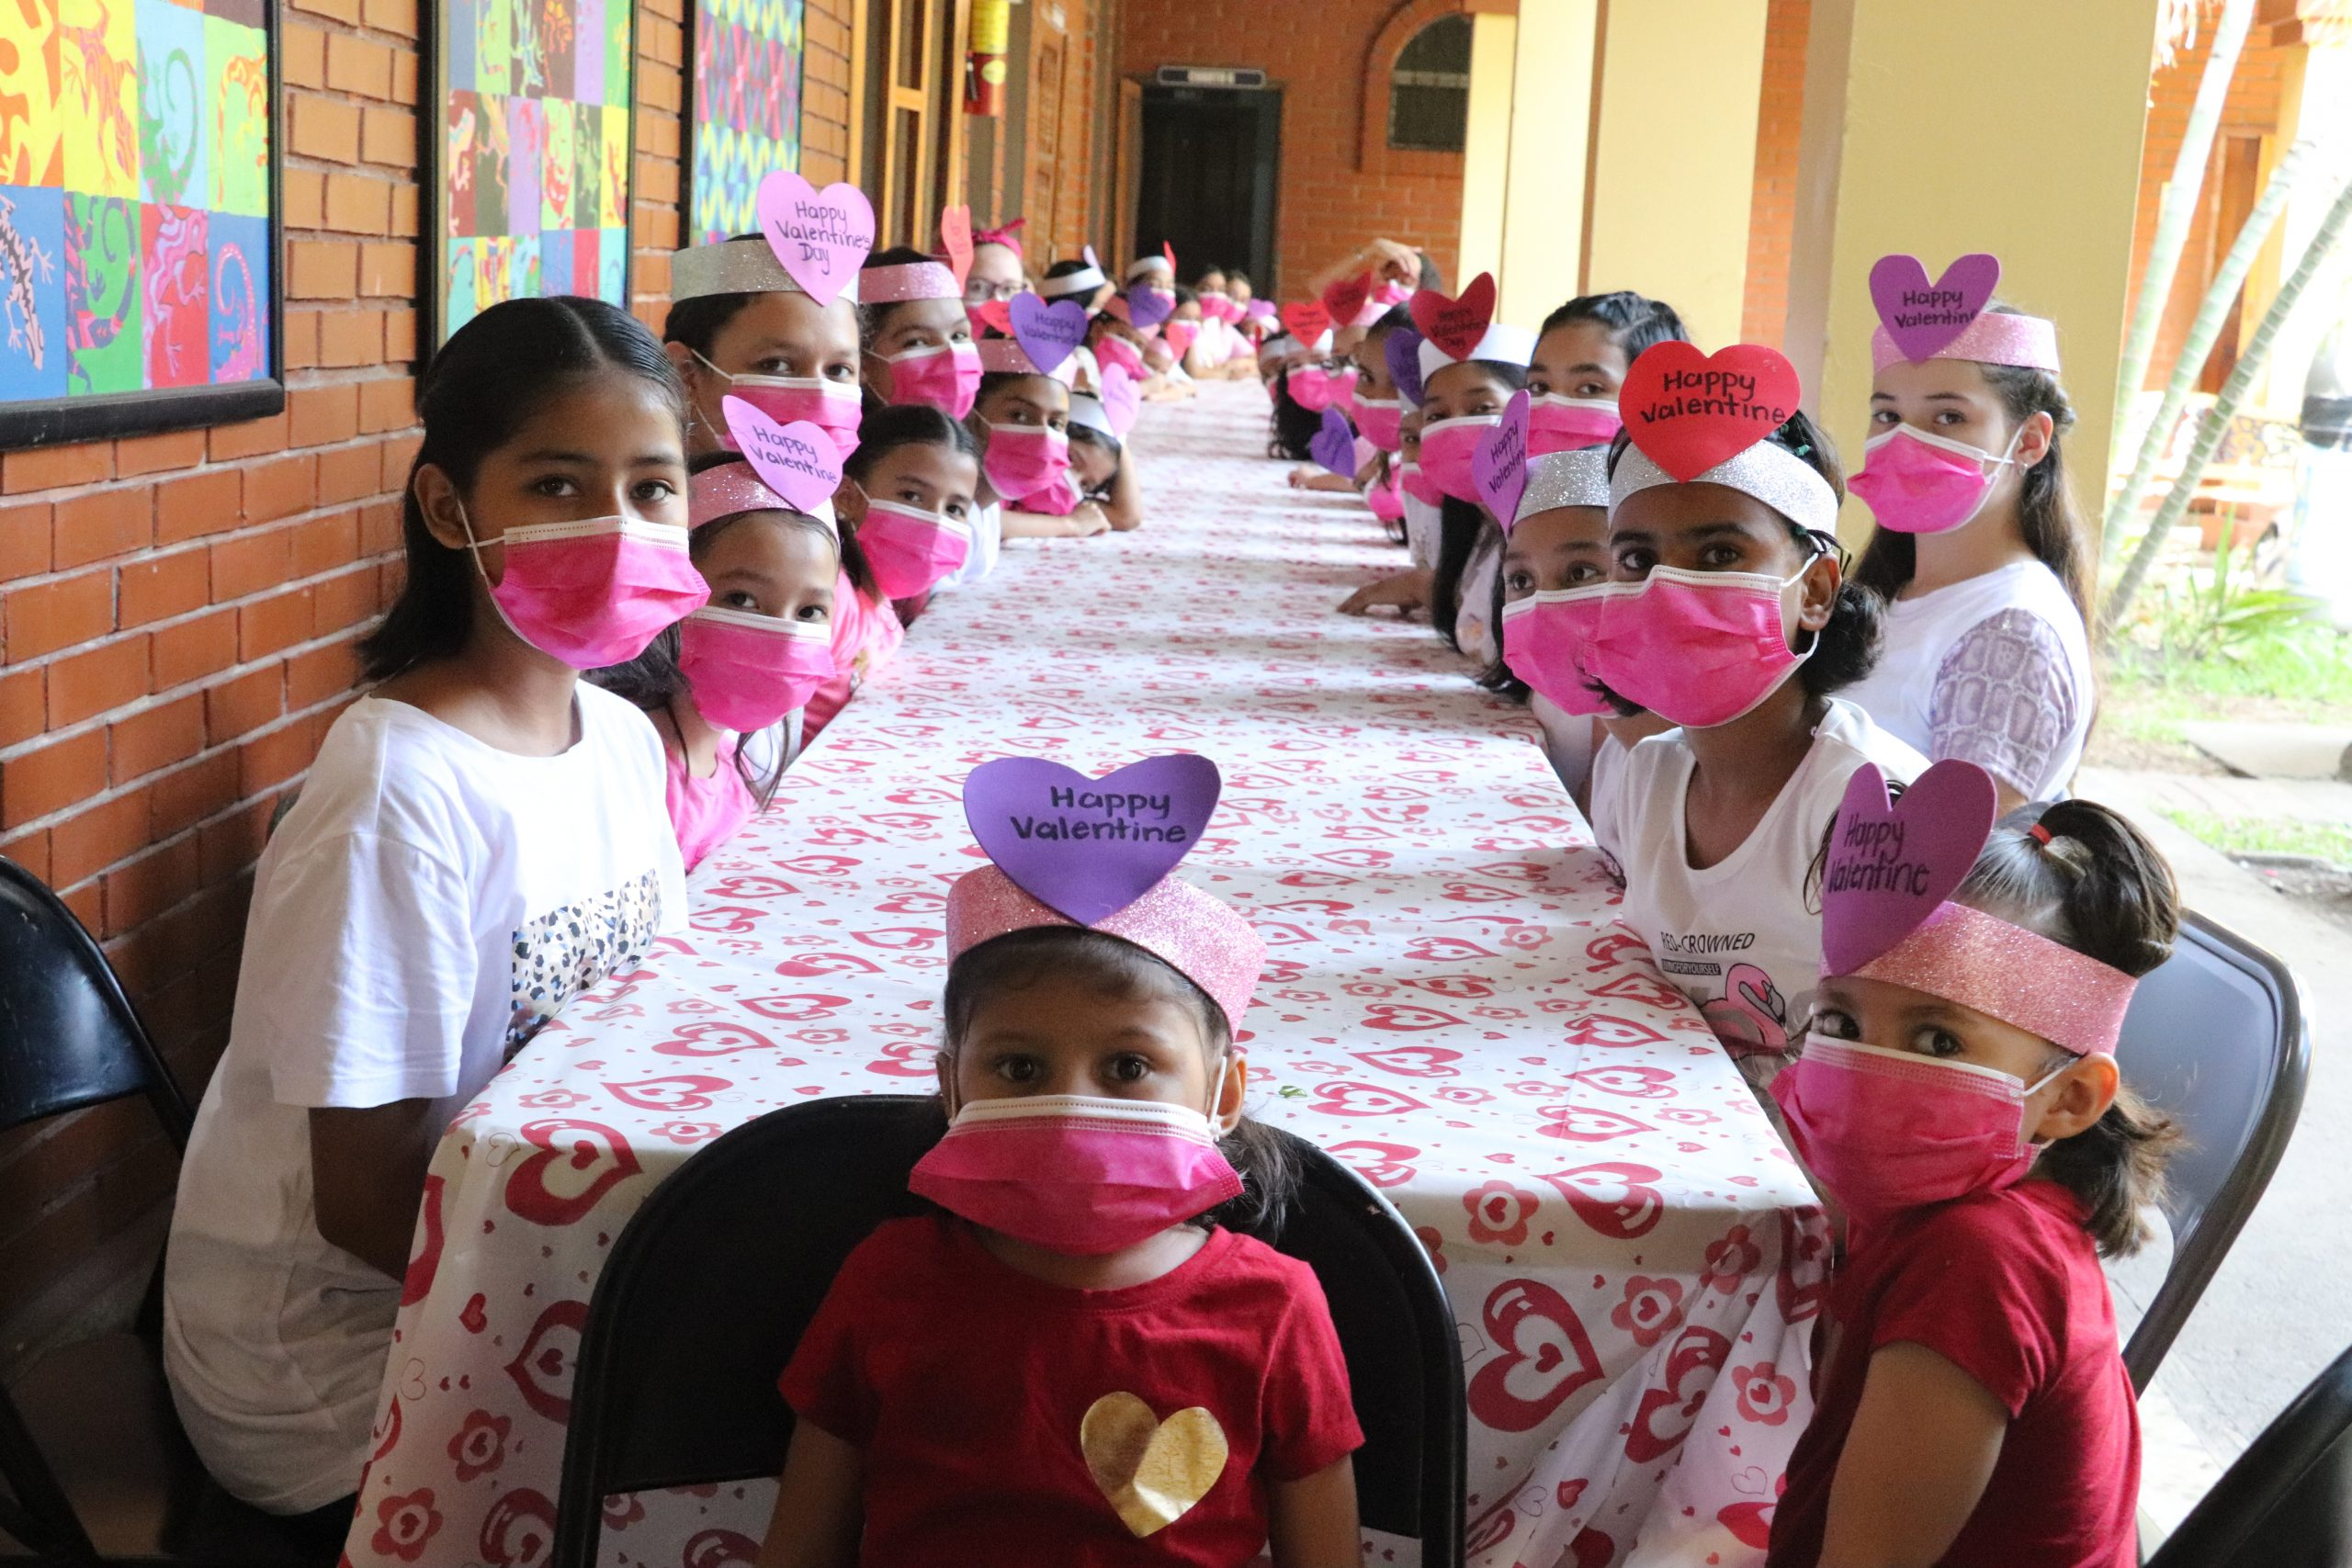 Our Little Roses is a family committed to improving the lives of women and girls in Honduras.